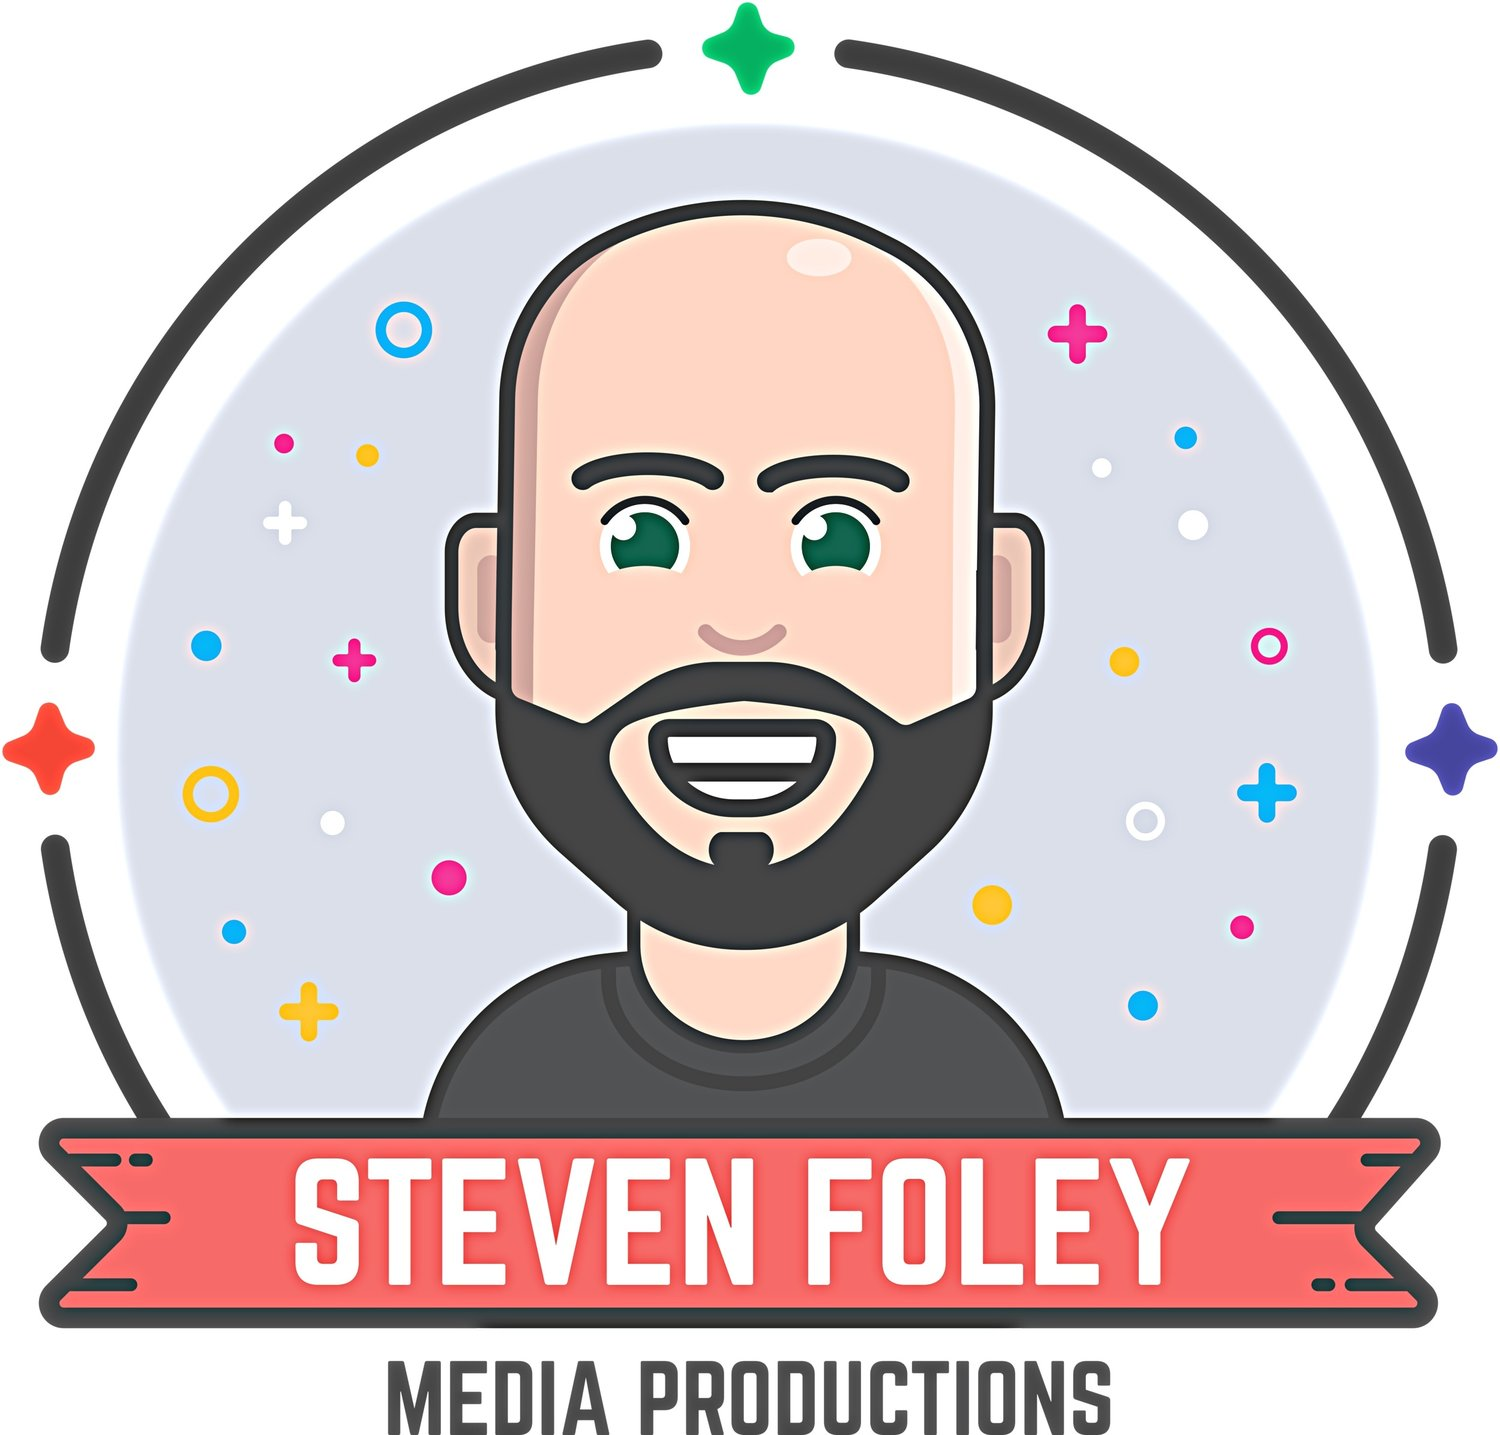 Steven Foley Media Productions